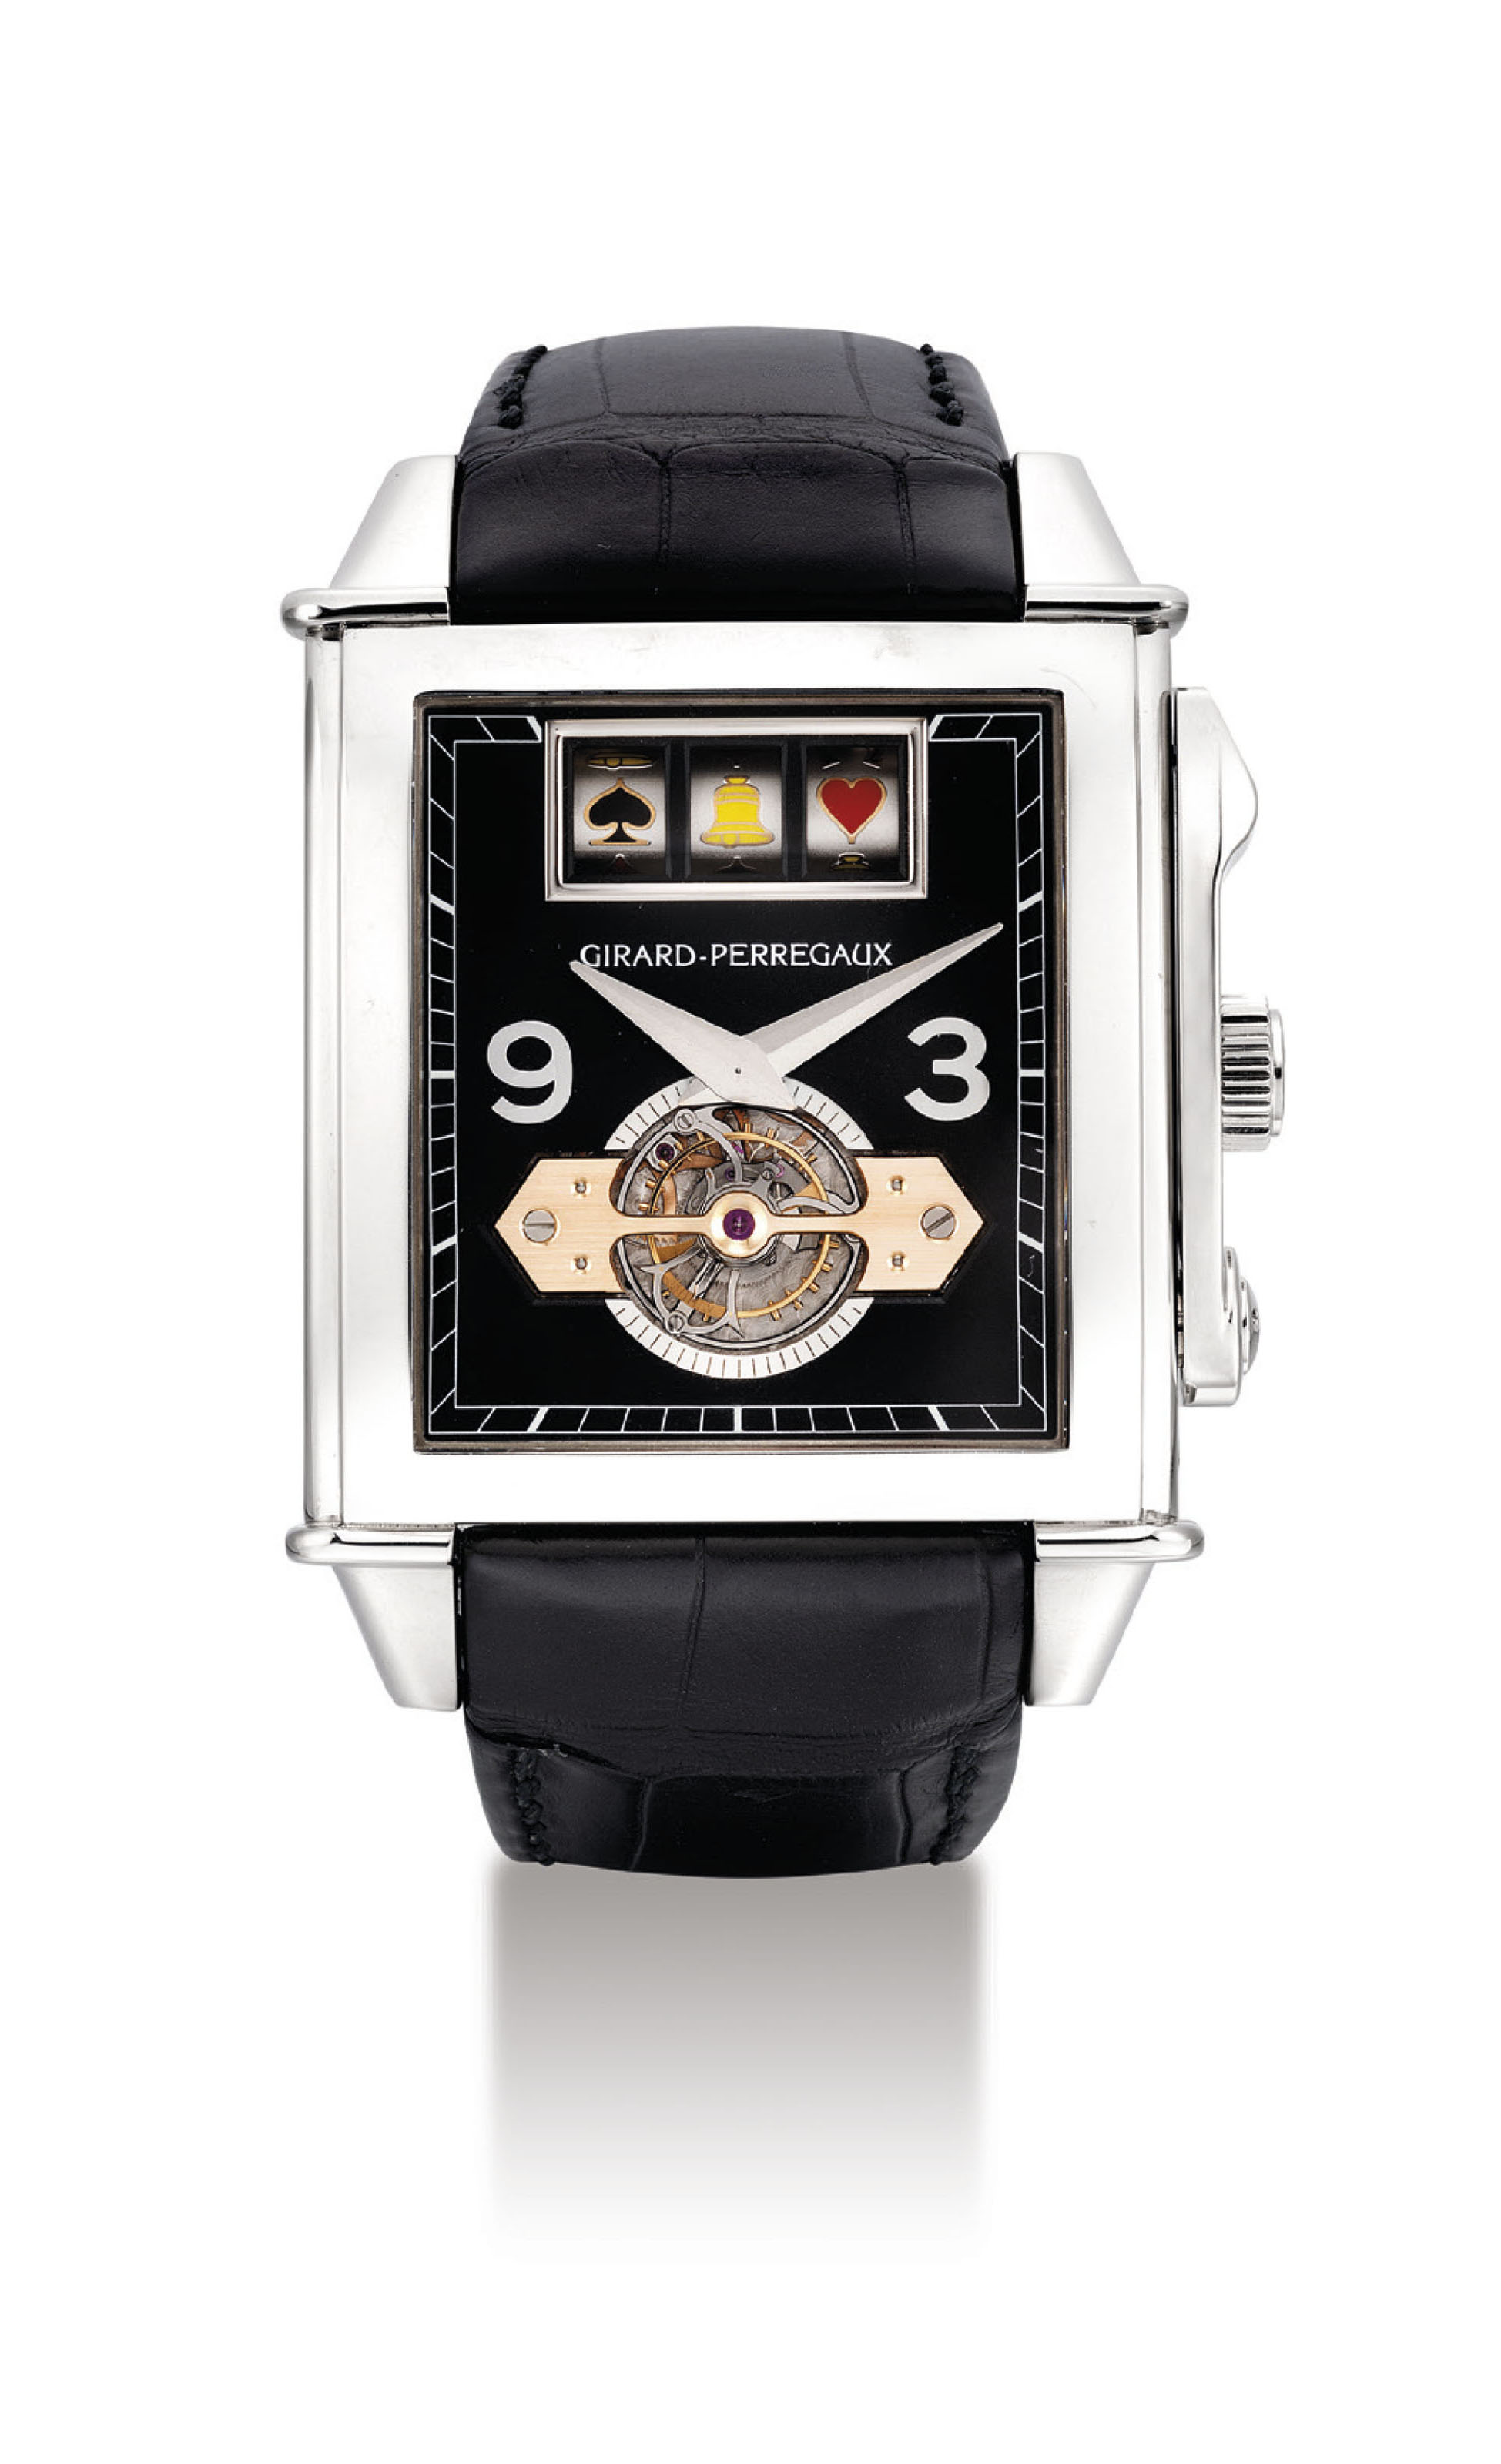 GIRARD-PERREGAUX. A VERY FINE AND RARE OVERSIZED 18K WHITE GOLD RECTANGULAR GOLD BRIDGE TOURBILLON WRISTWATCH WITH SLOT MACHINE AND CHIME MECHANISM